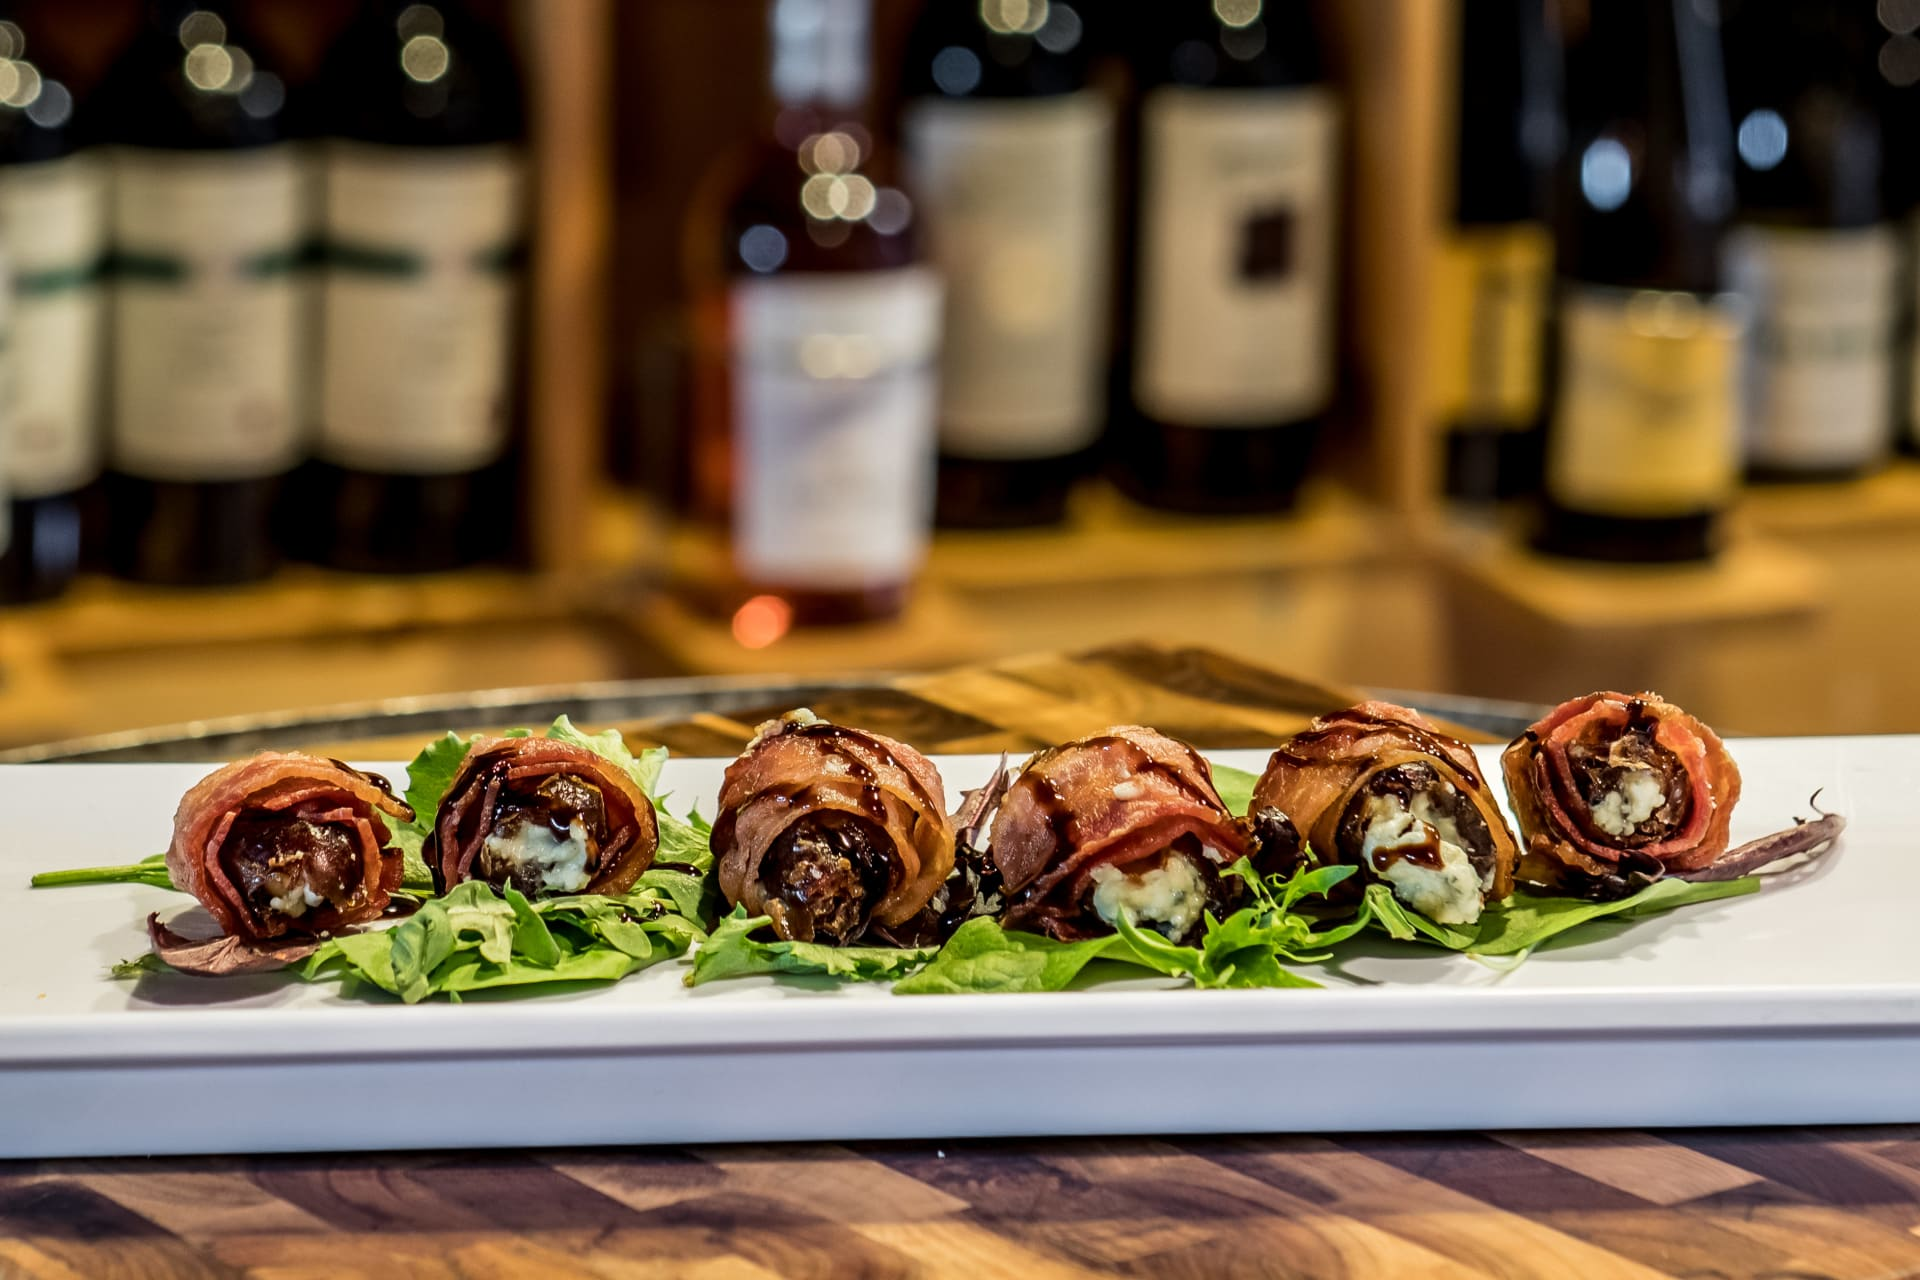 BLUE CHEESE STUFFED BACON WRAPPED DATES